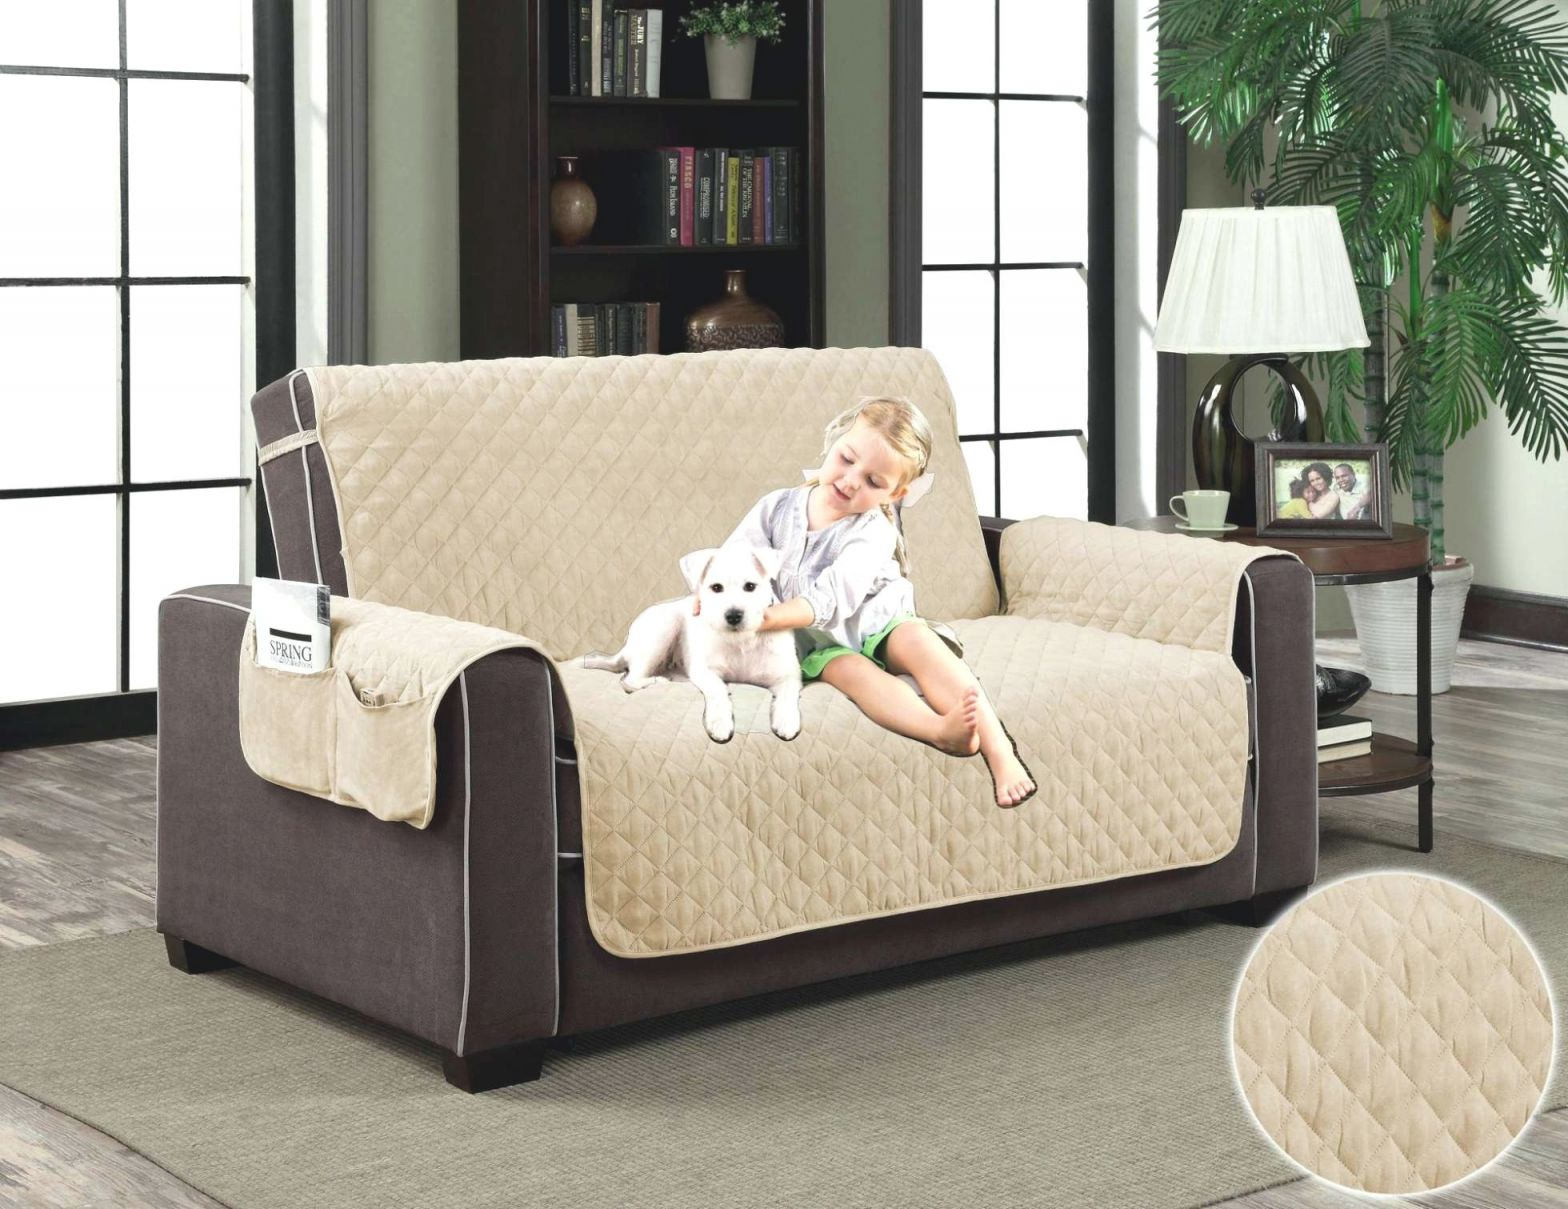 Top Furniture Covers Sofas Fabric Sears Mattress And Box regarding Unique Sears Living Room Furniture